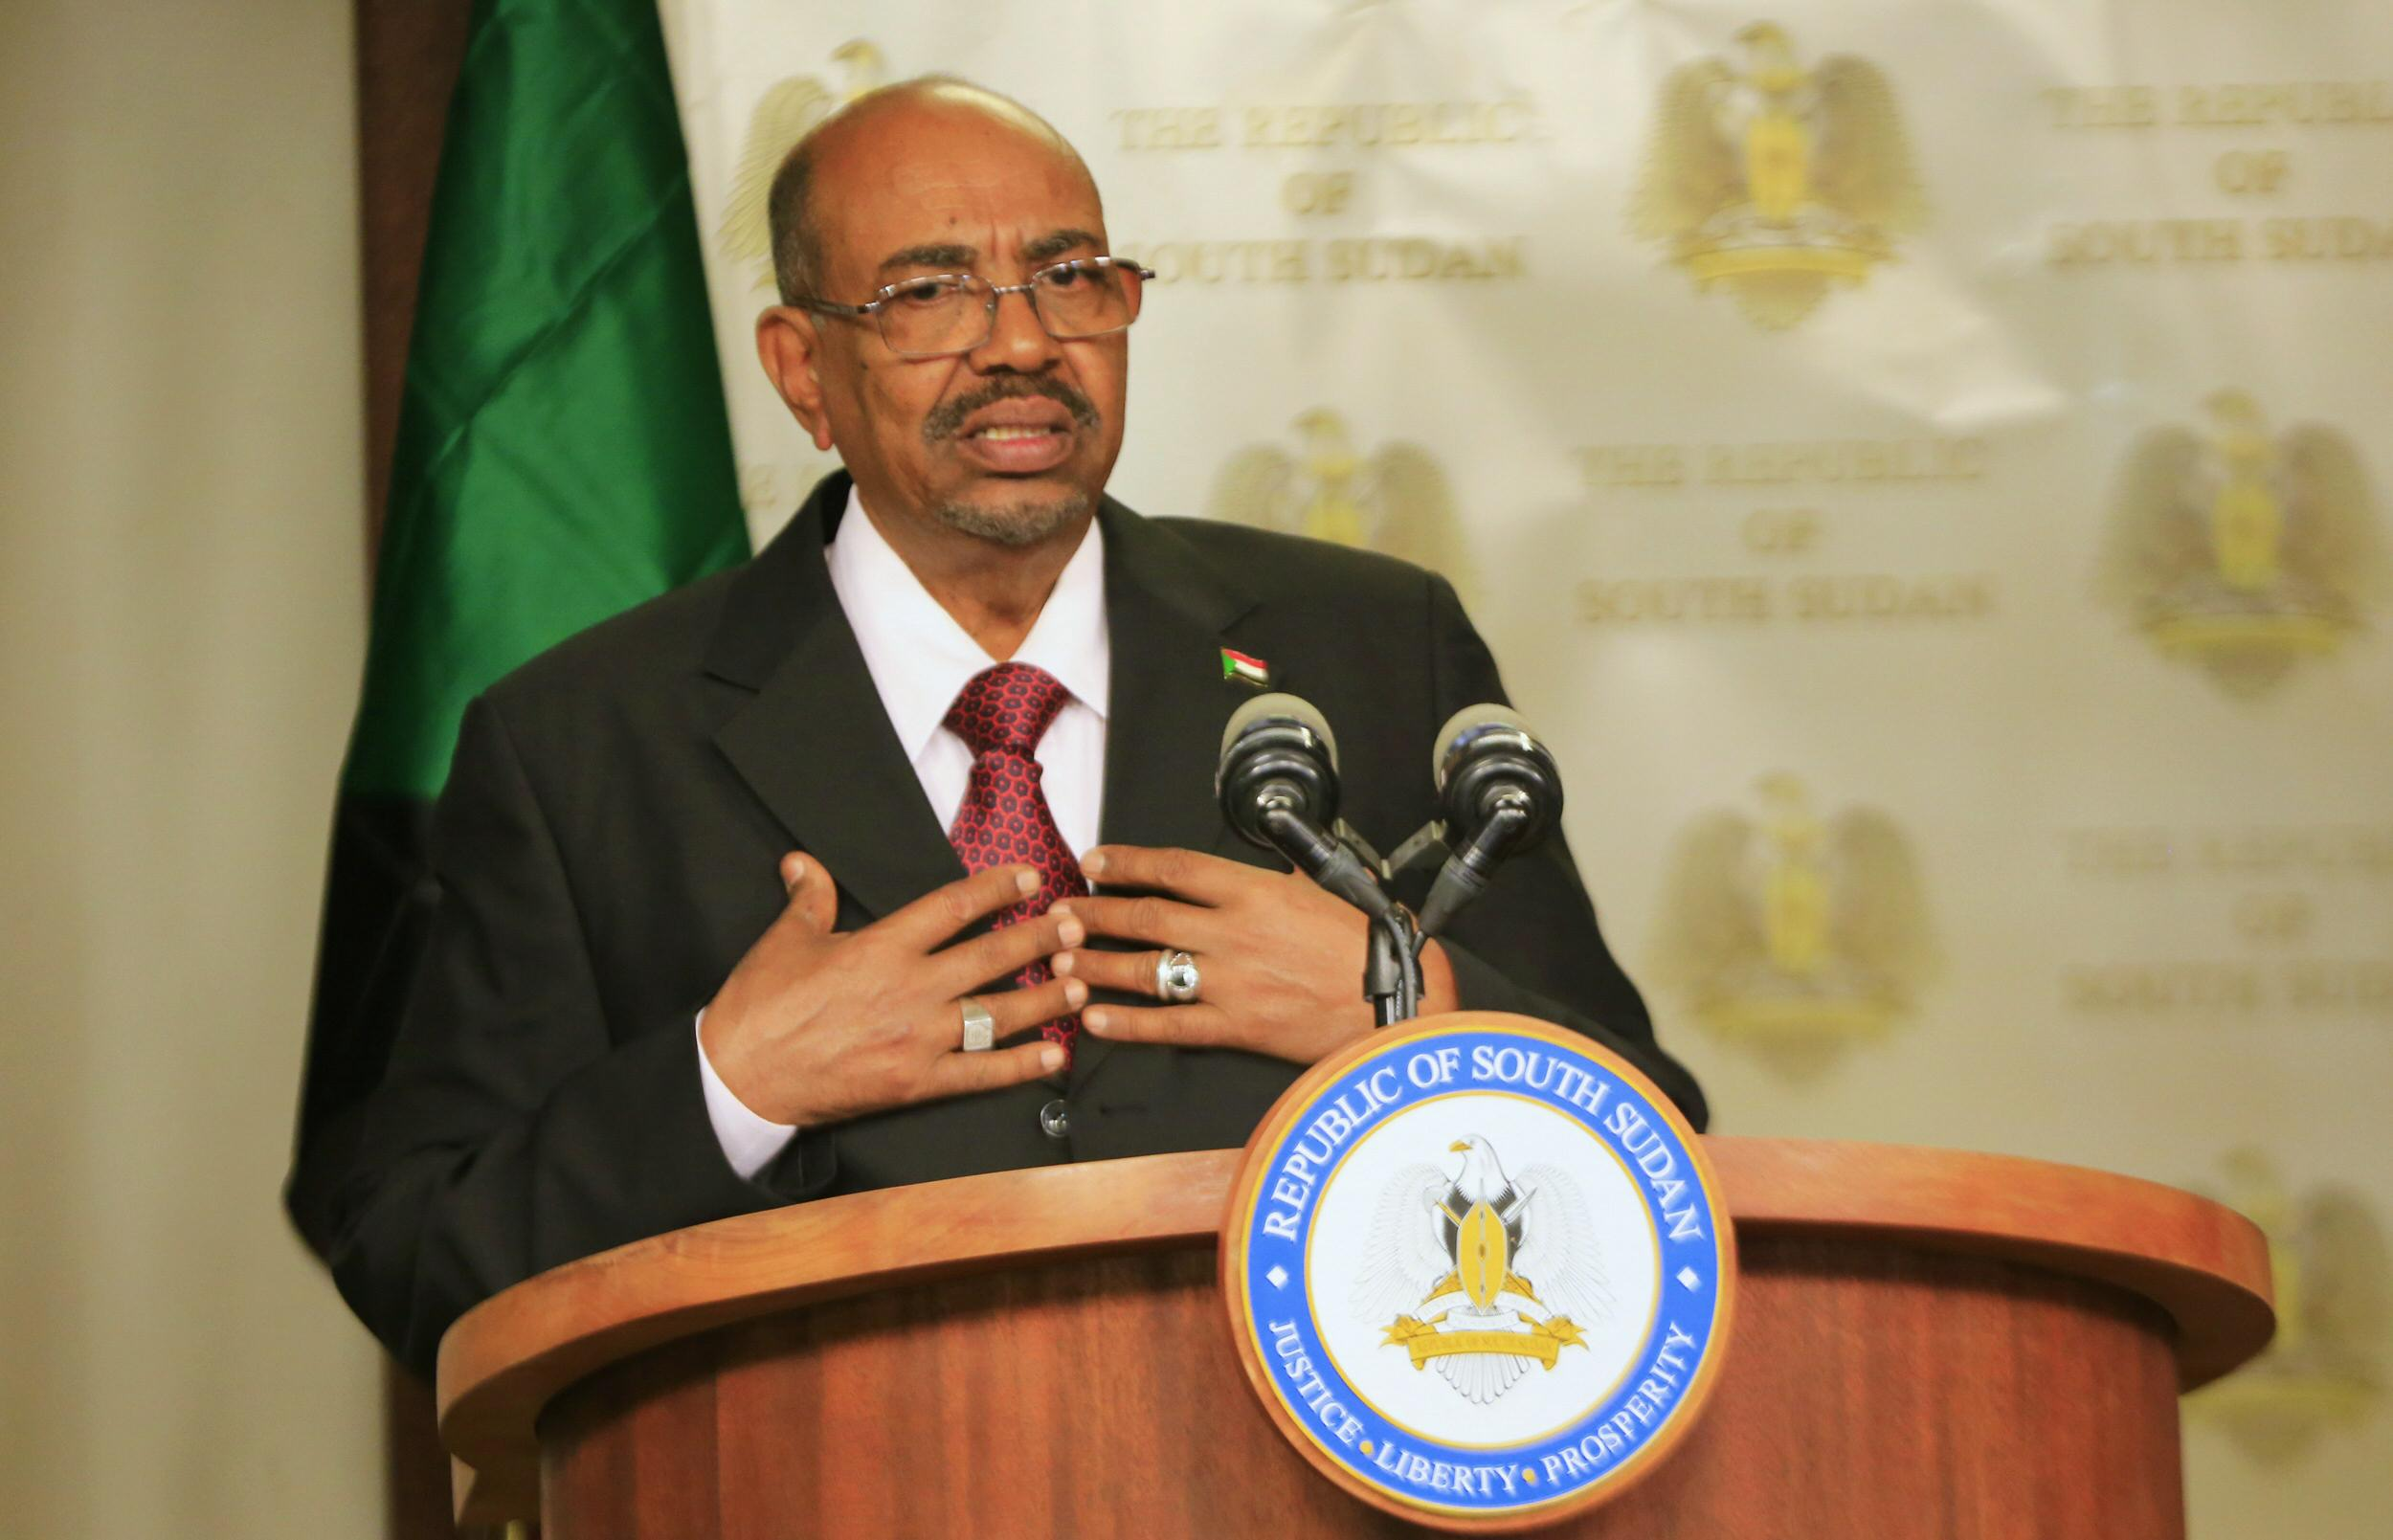 Sudan extends ceasefire ahead of expected lifting of U.S. trade embargo